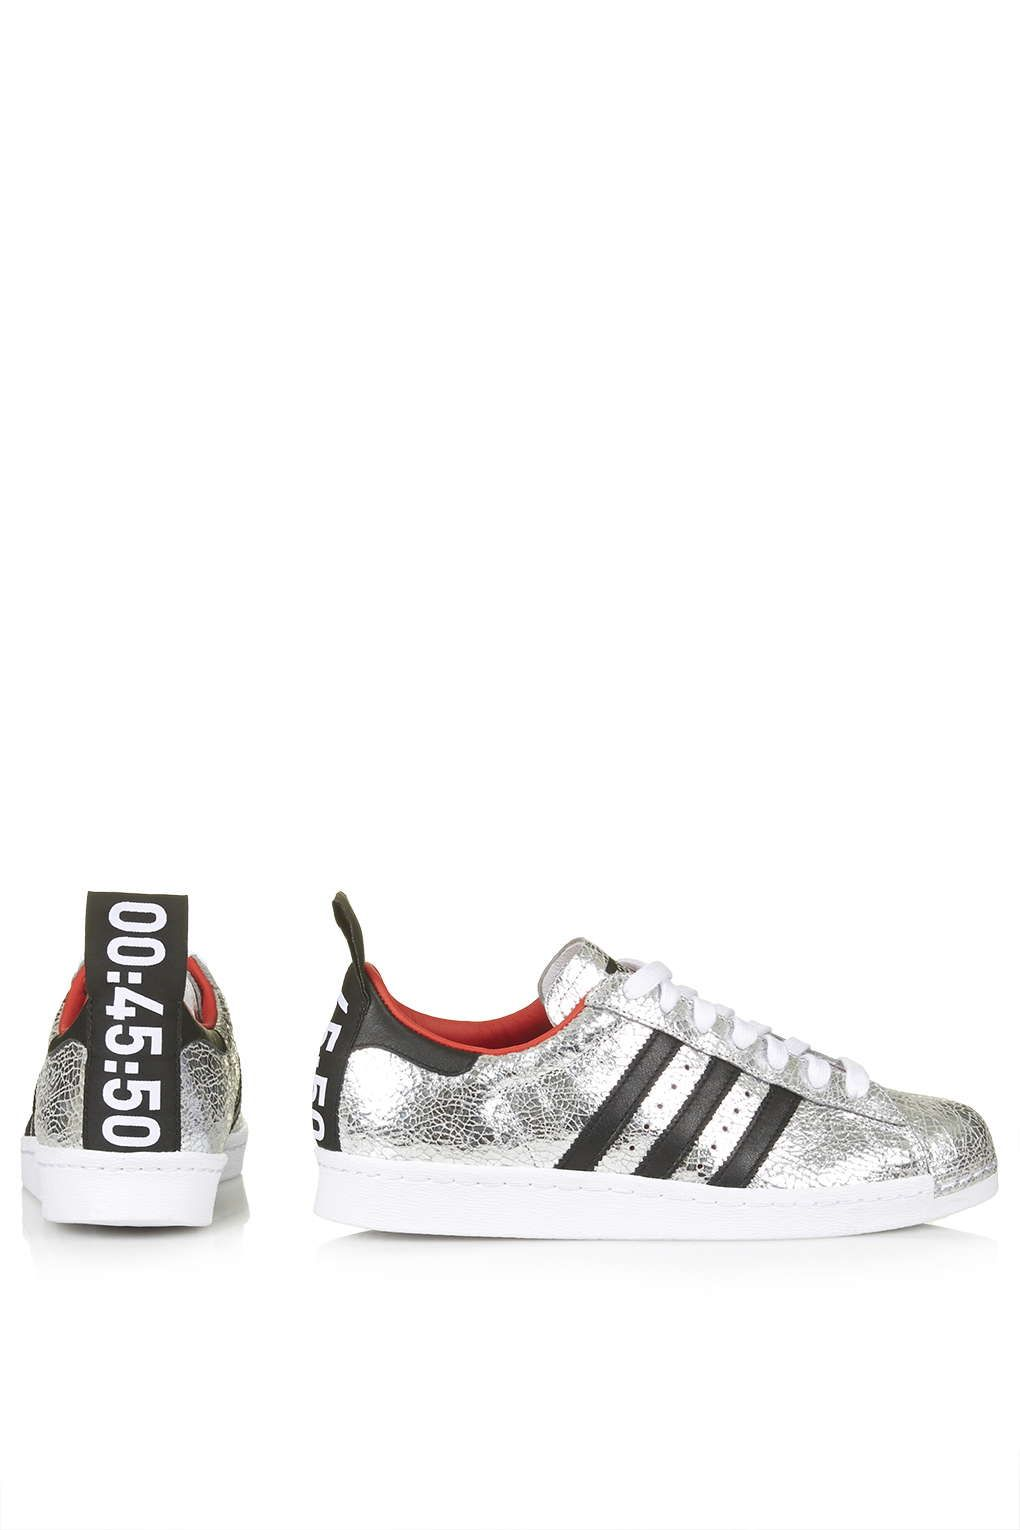 adidas superstar adicolor adidas white superstar Red Tree Recruitment